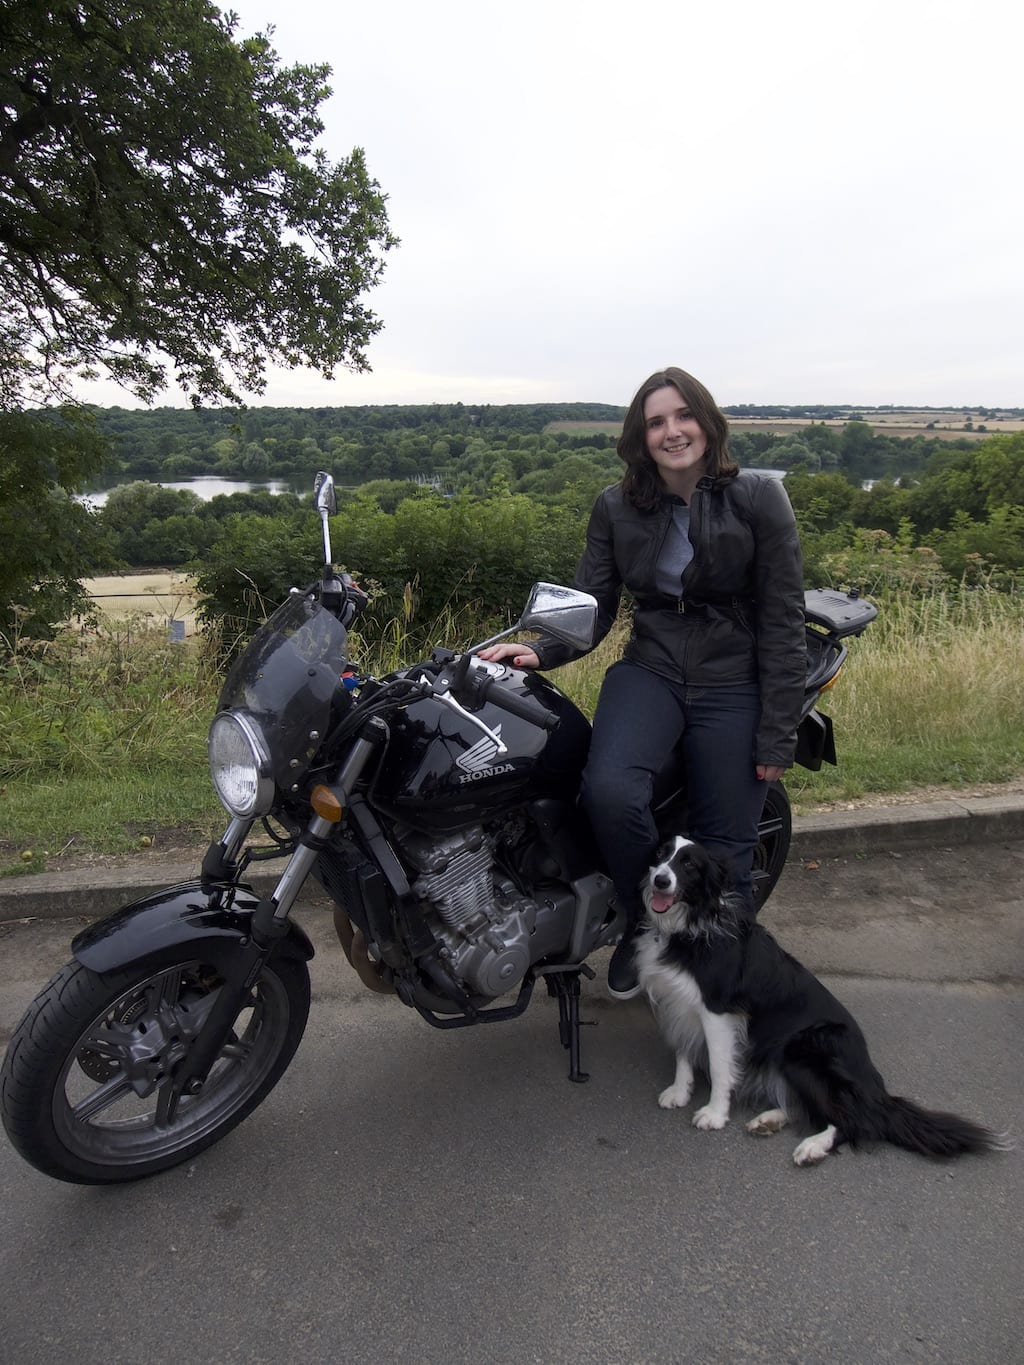 Natalia posing with her Honda CBF500 wearing her new Knox jeans and Dainese leather jacket